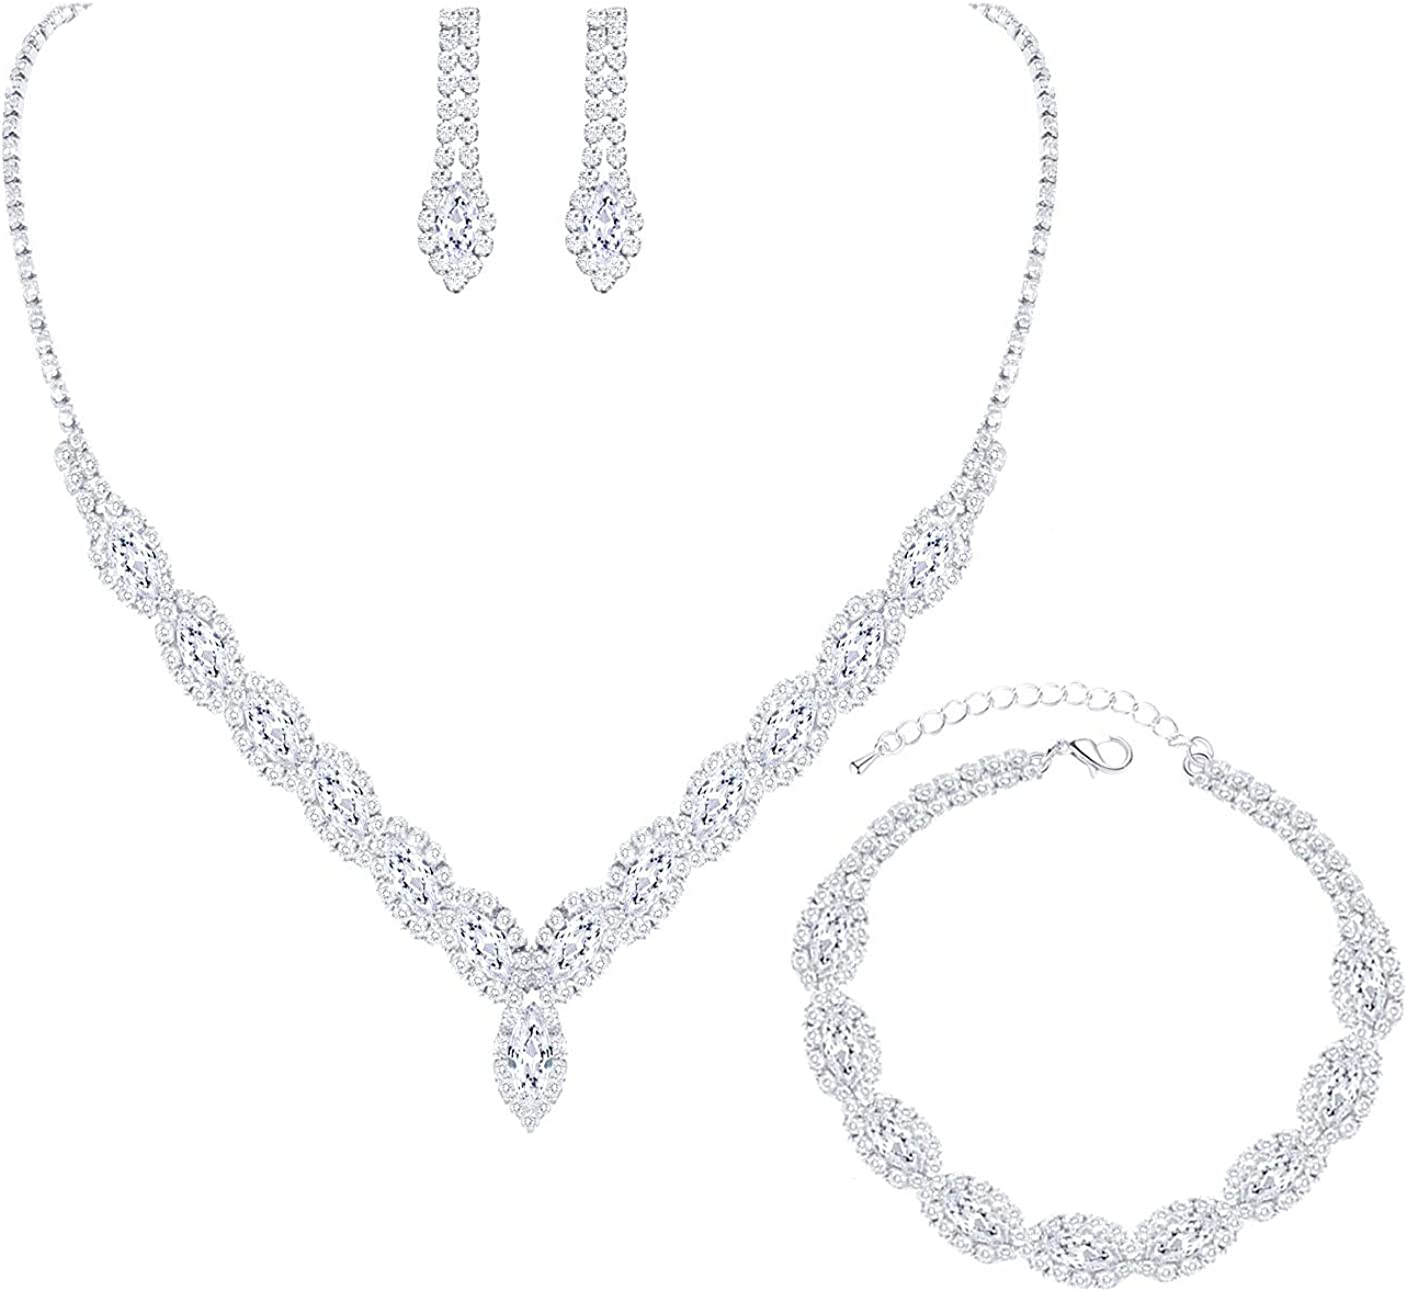 YSOUL CZ Rhinestone Necklace Earrings Jewelry Set For Bridal Bridesmaid Wedding Evening Party Prom